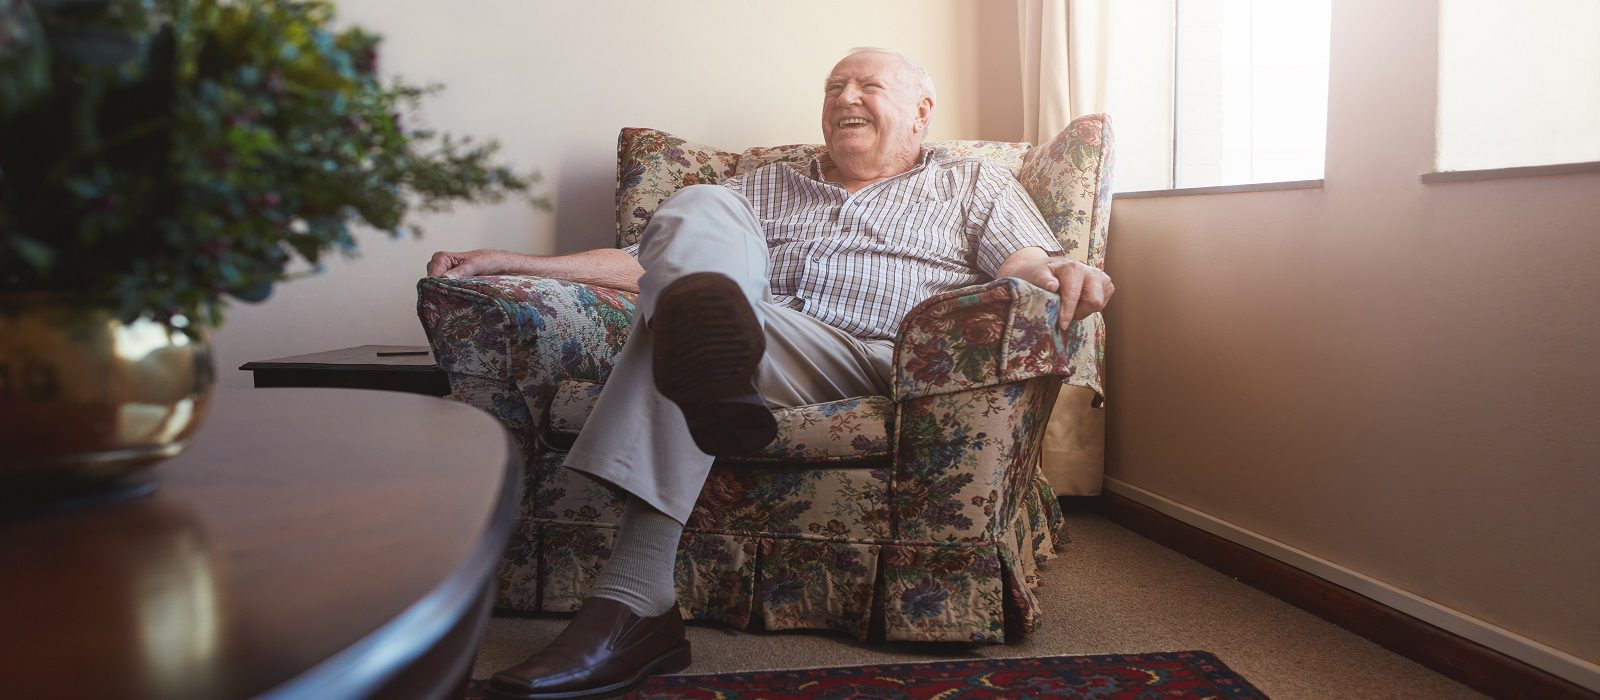 Indoor shot of smiling elderly man sitting on an arm chair at old age home.